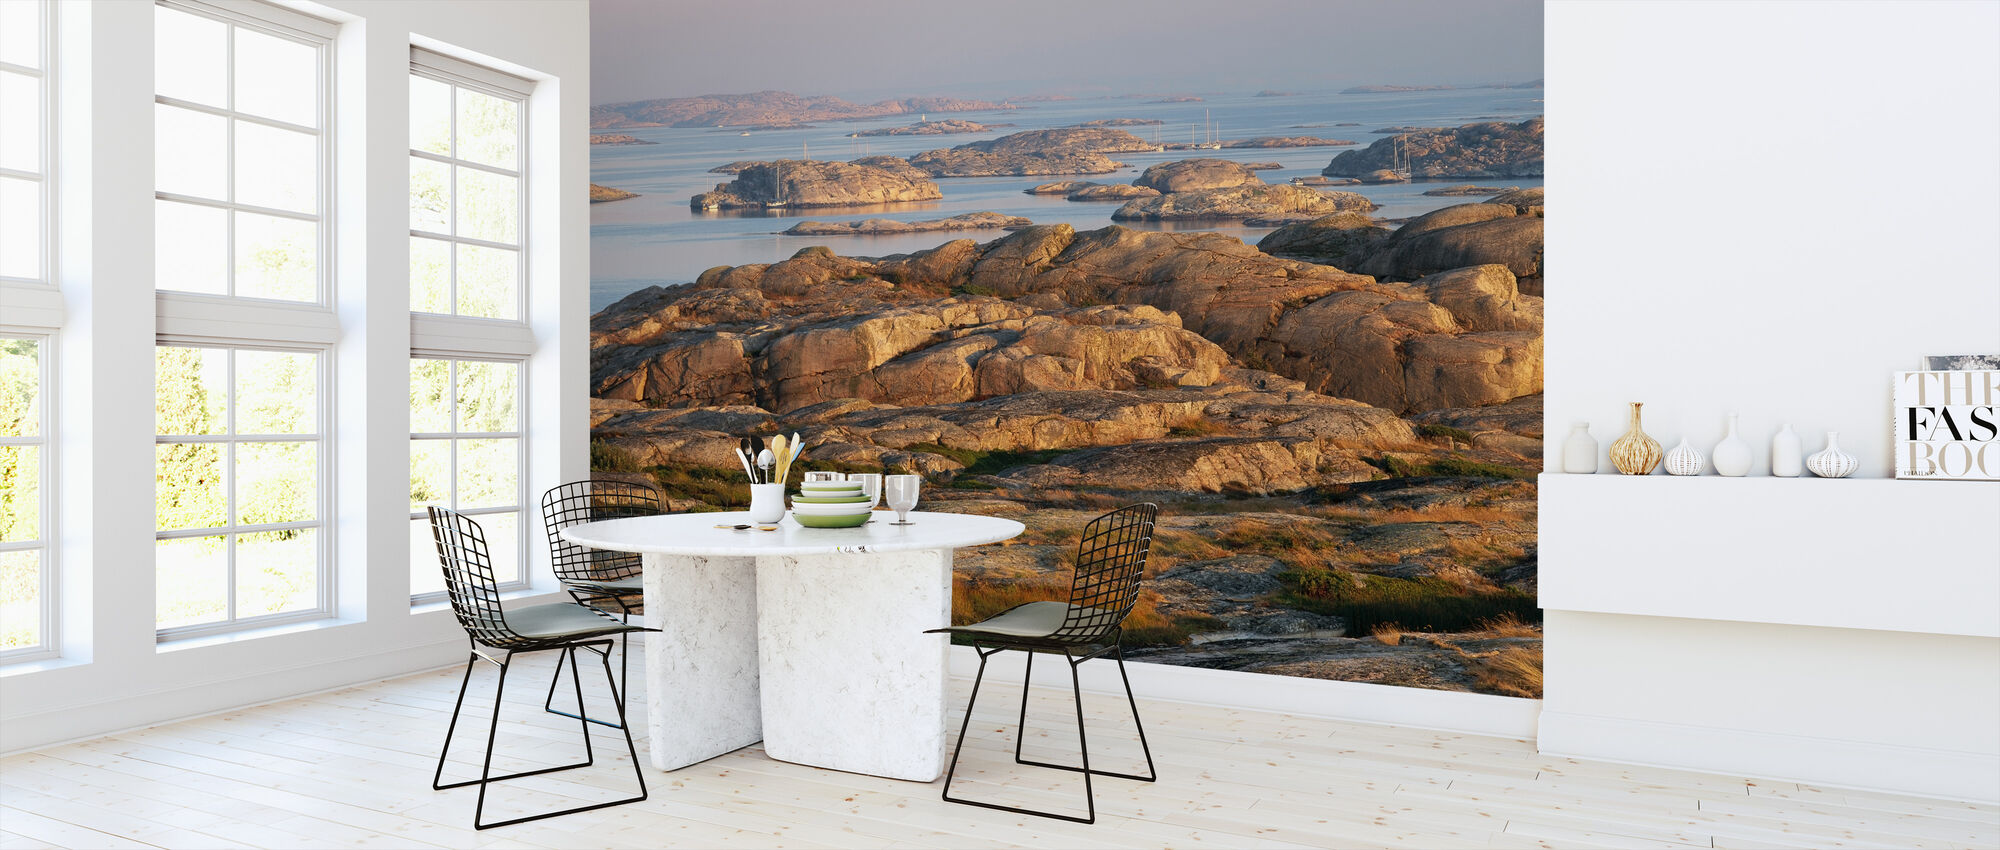 View of the Swedish West Cost at Gluppo - Wallpaper - Kitchen